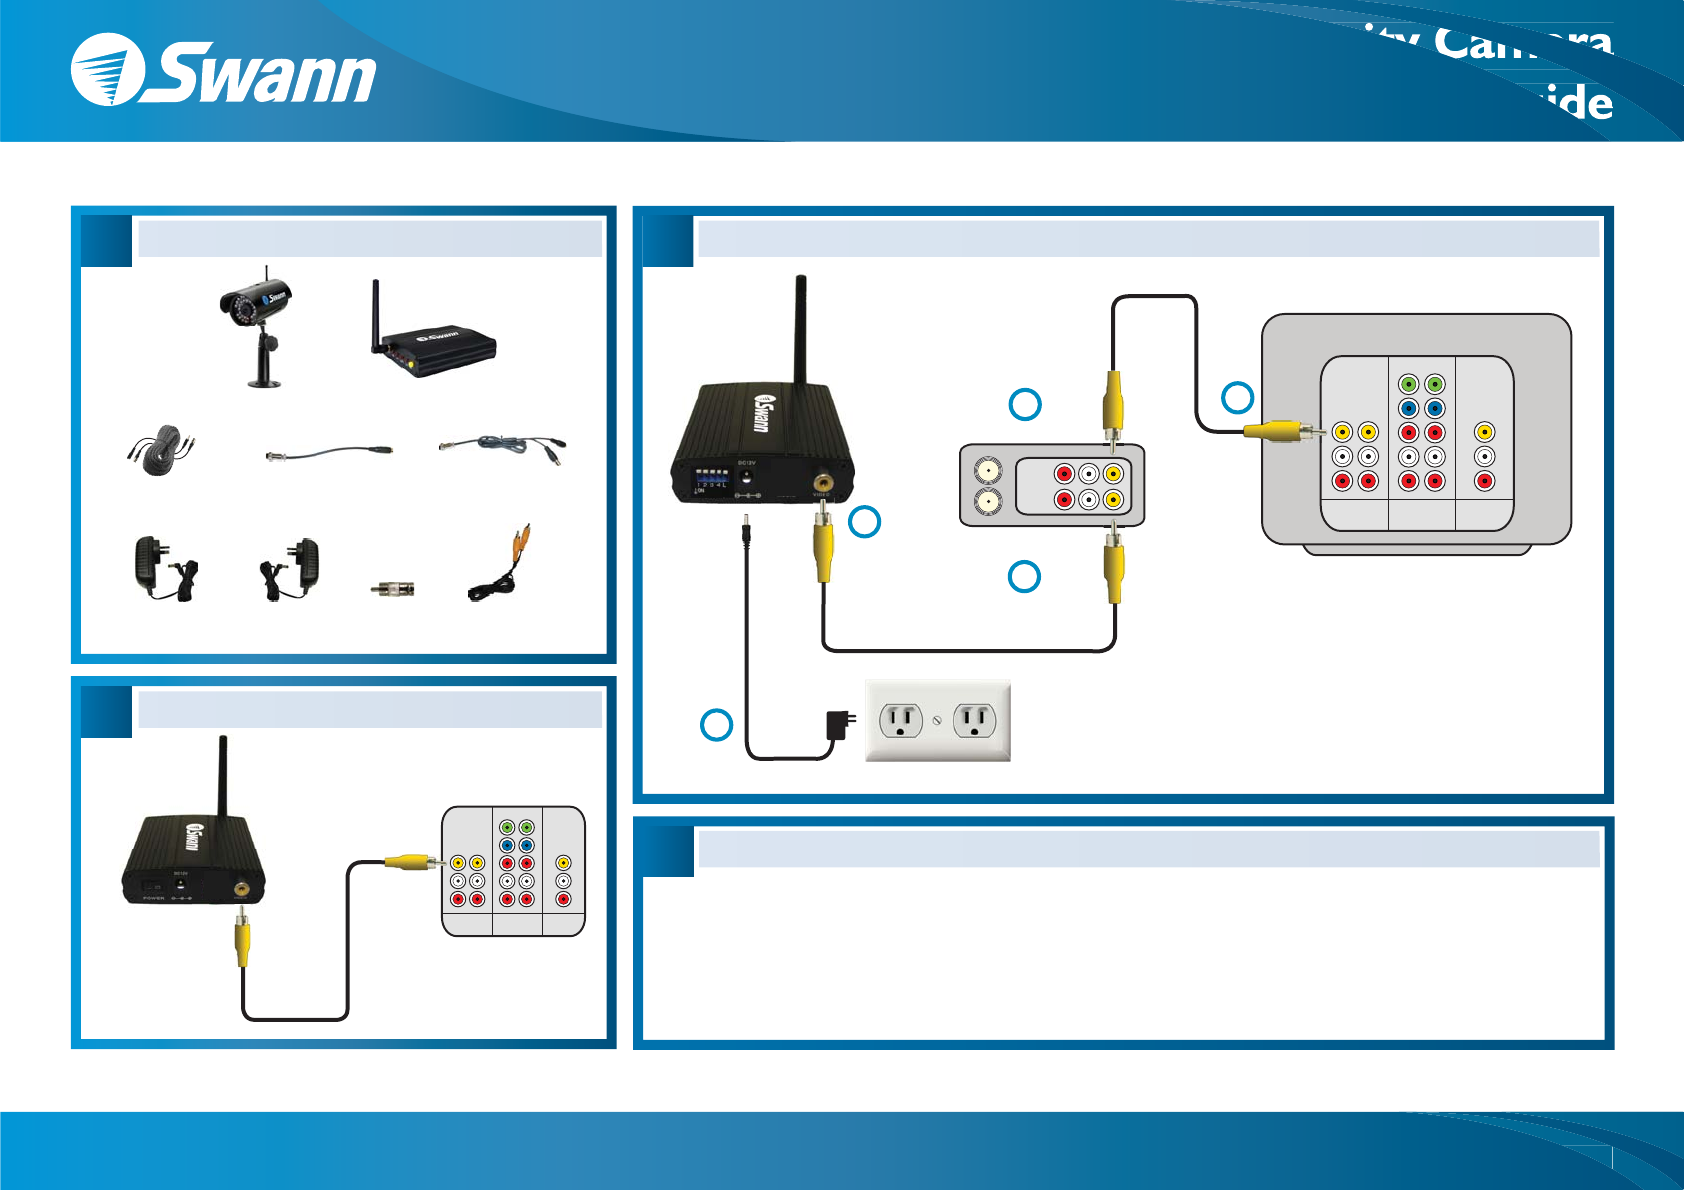 c6bd6806 a746 4b78 9f26 80134f634056 bg1 swann security camera ppw 250 user guide manualsonline com swann security camera wiring diagram at soozxer.org